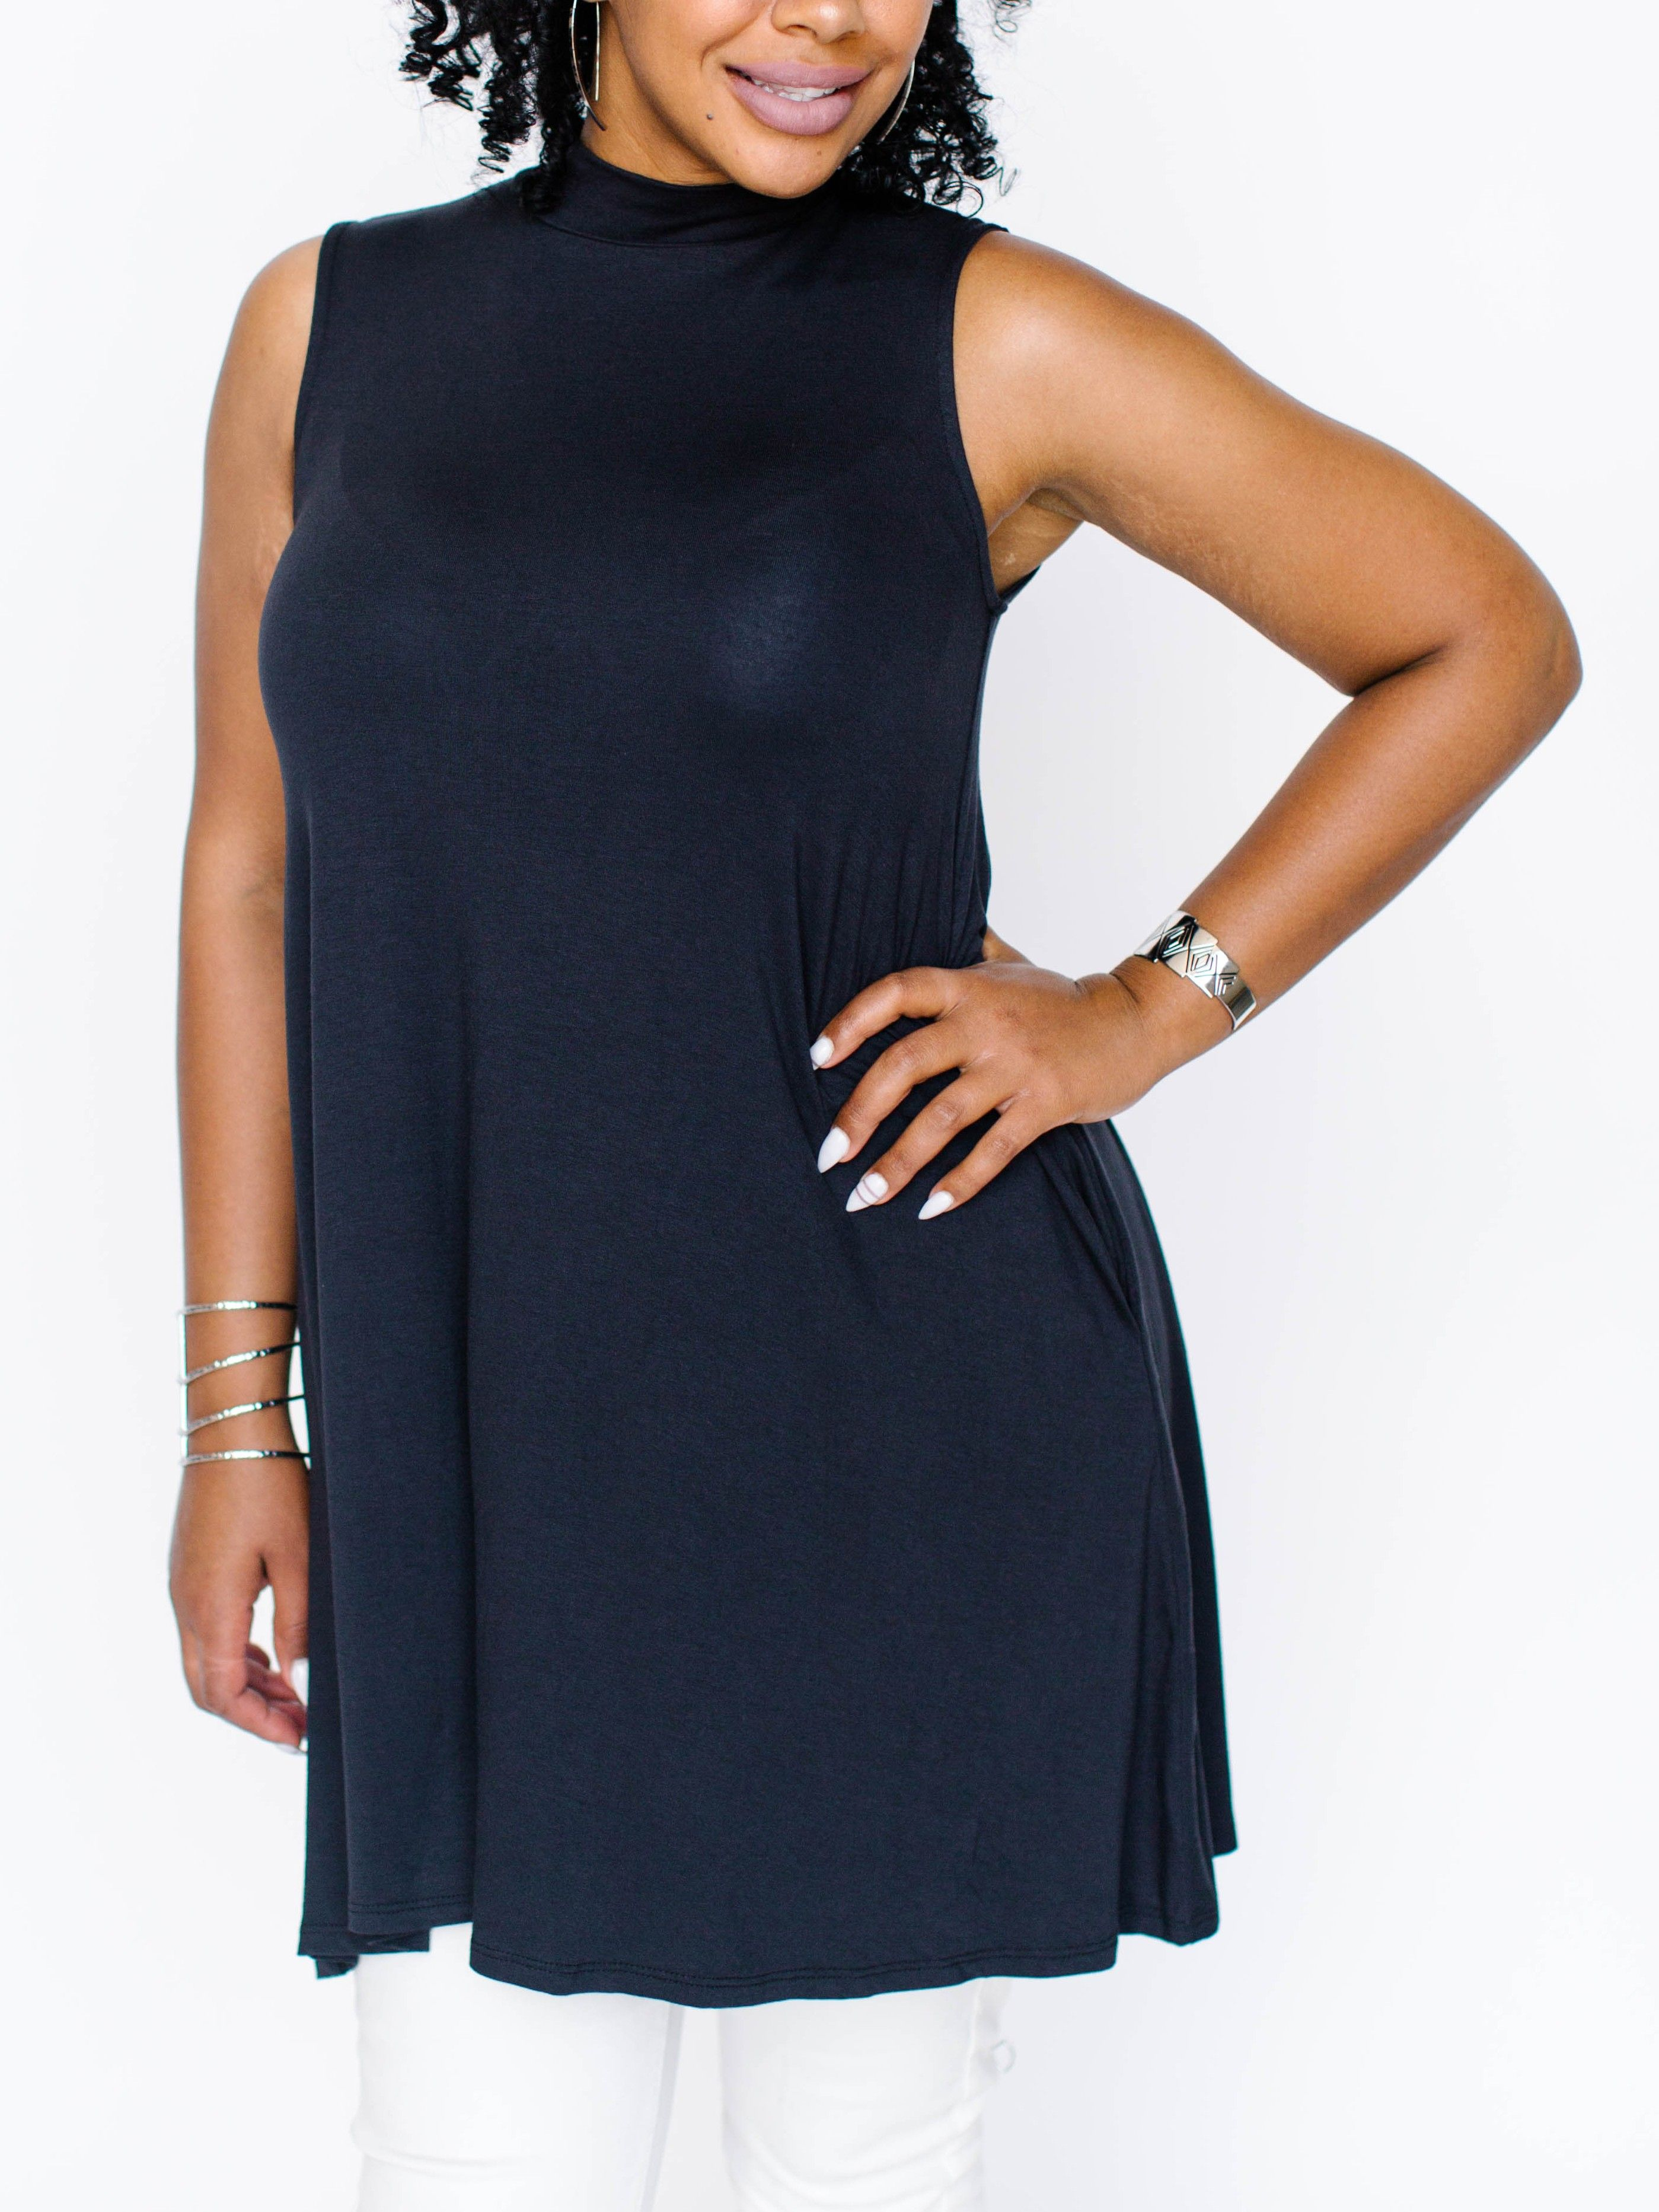 784fbd34d83d8 Newest version of the Agnes & Dora Swing Tunic ... Presenting the Mock  Swing Tank! Must Have! www.shopkarenm.com